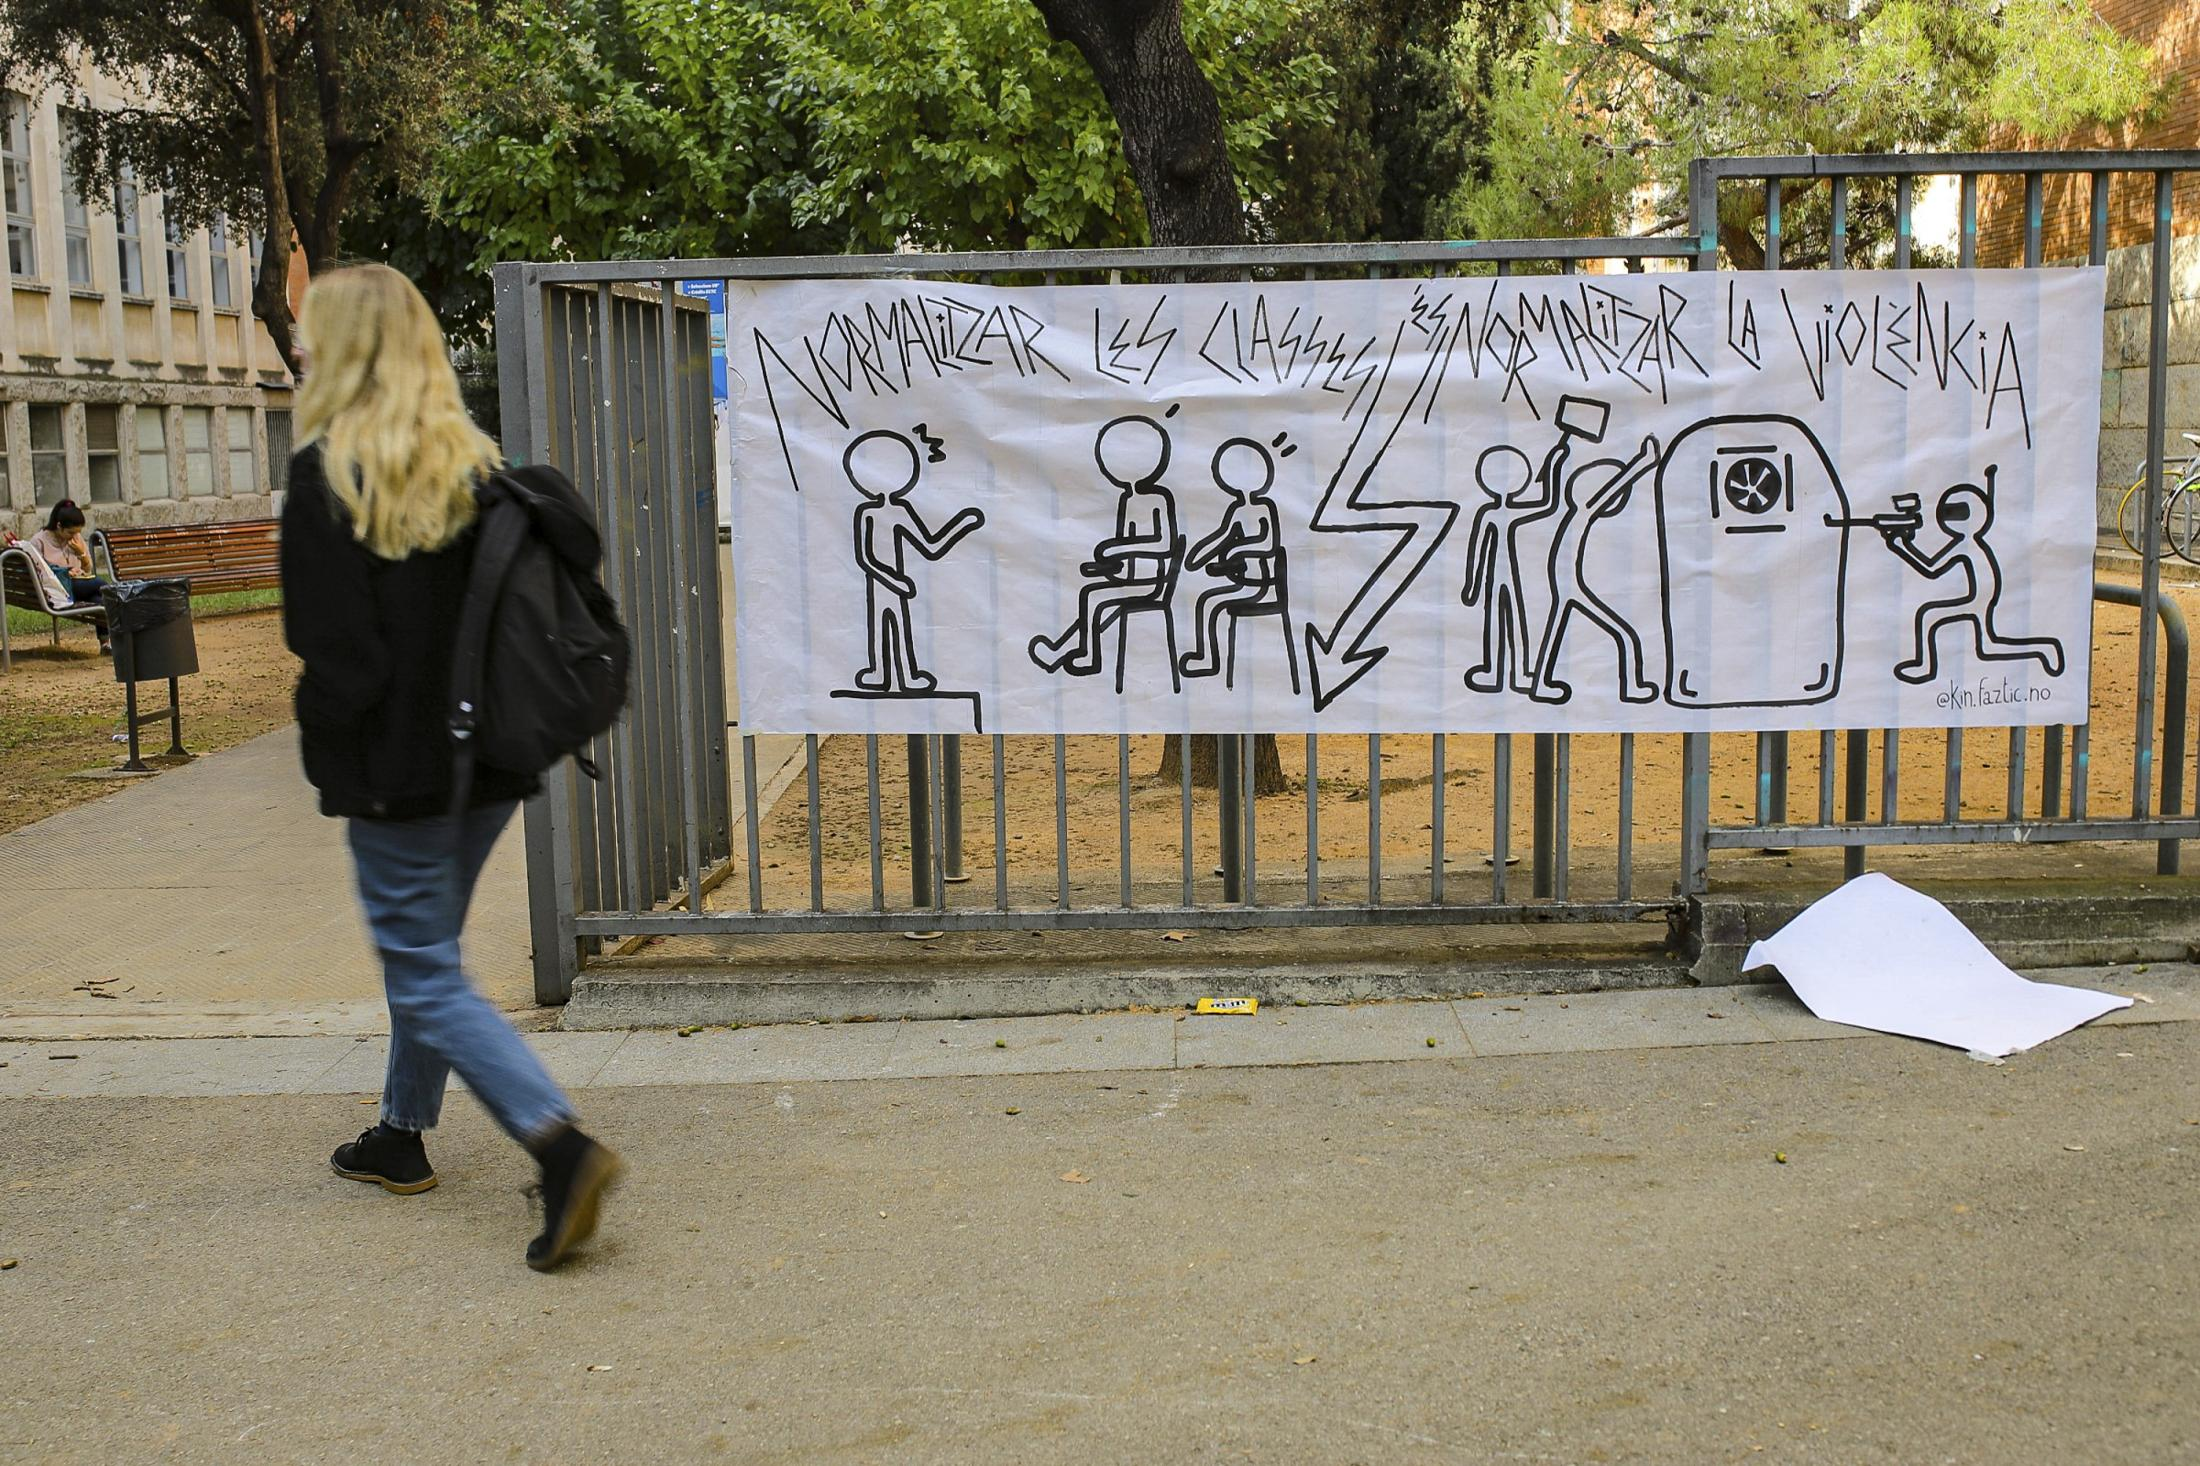 """Arran and SEPC have called for the resignation of the whole government of Catalonia, because, in their opinion, it is """"a shame for the Catalan people"""", """"they repress popular independence"""" and their """"only effective policies have been the execution of evictions. October 2019, Barcelona, Spain."""